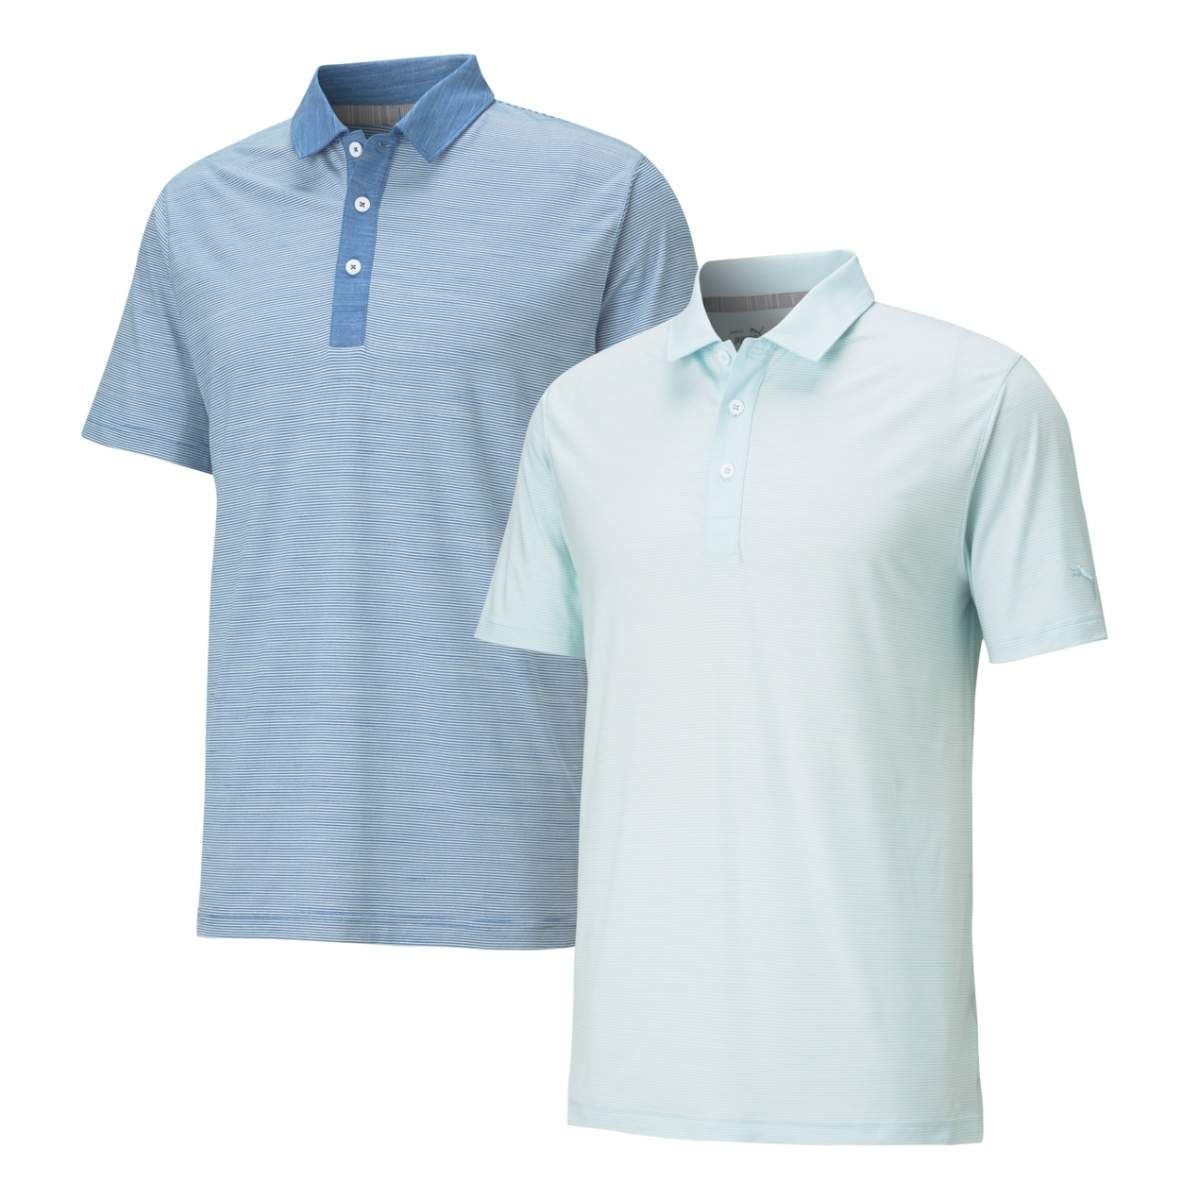 Puma Men's 2021 Cloudspun Legend Polo